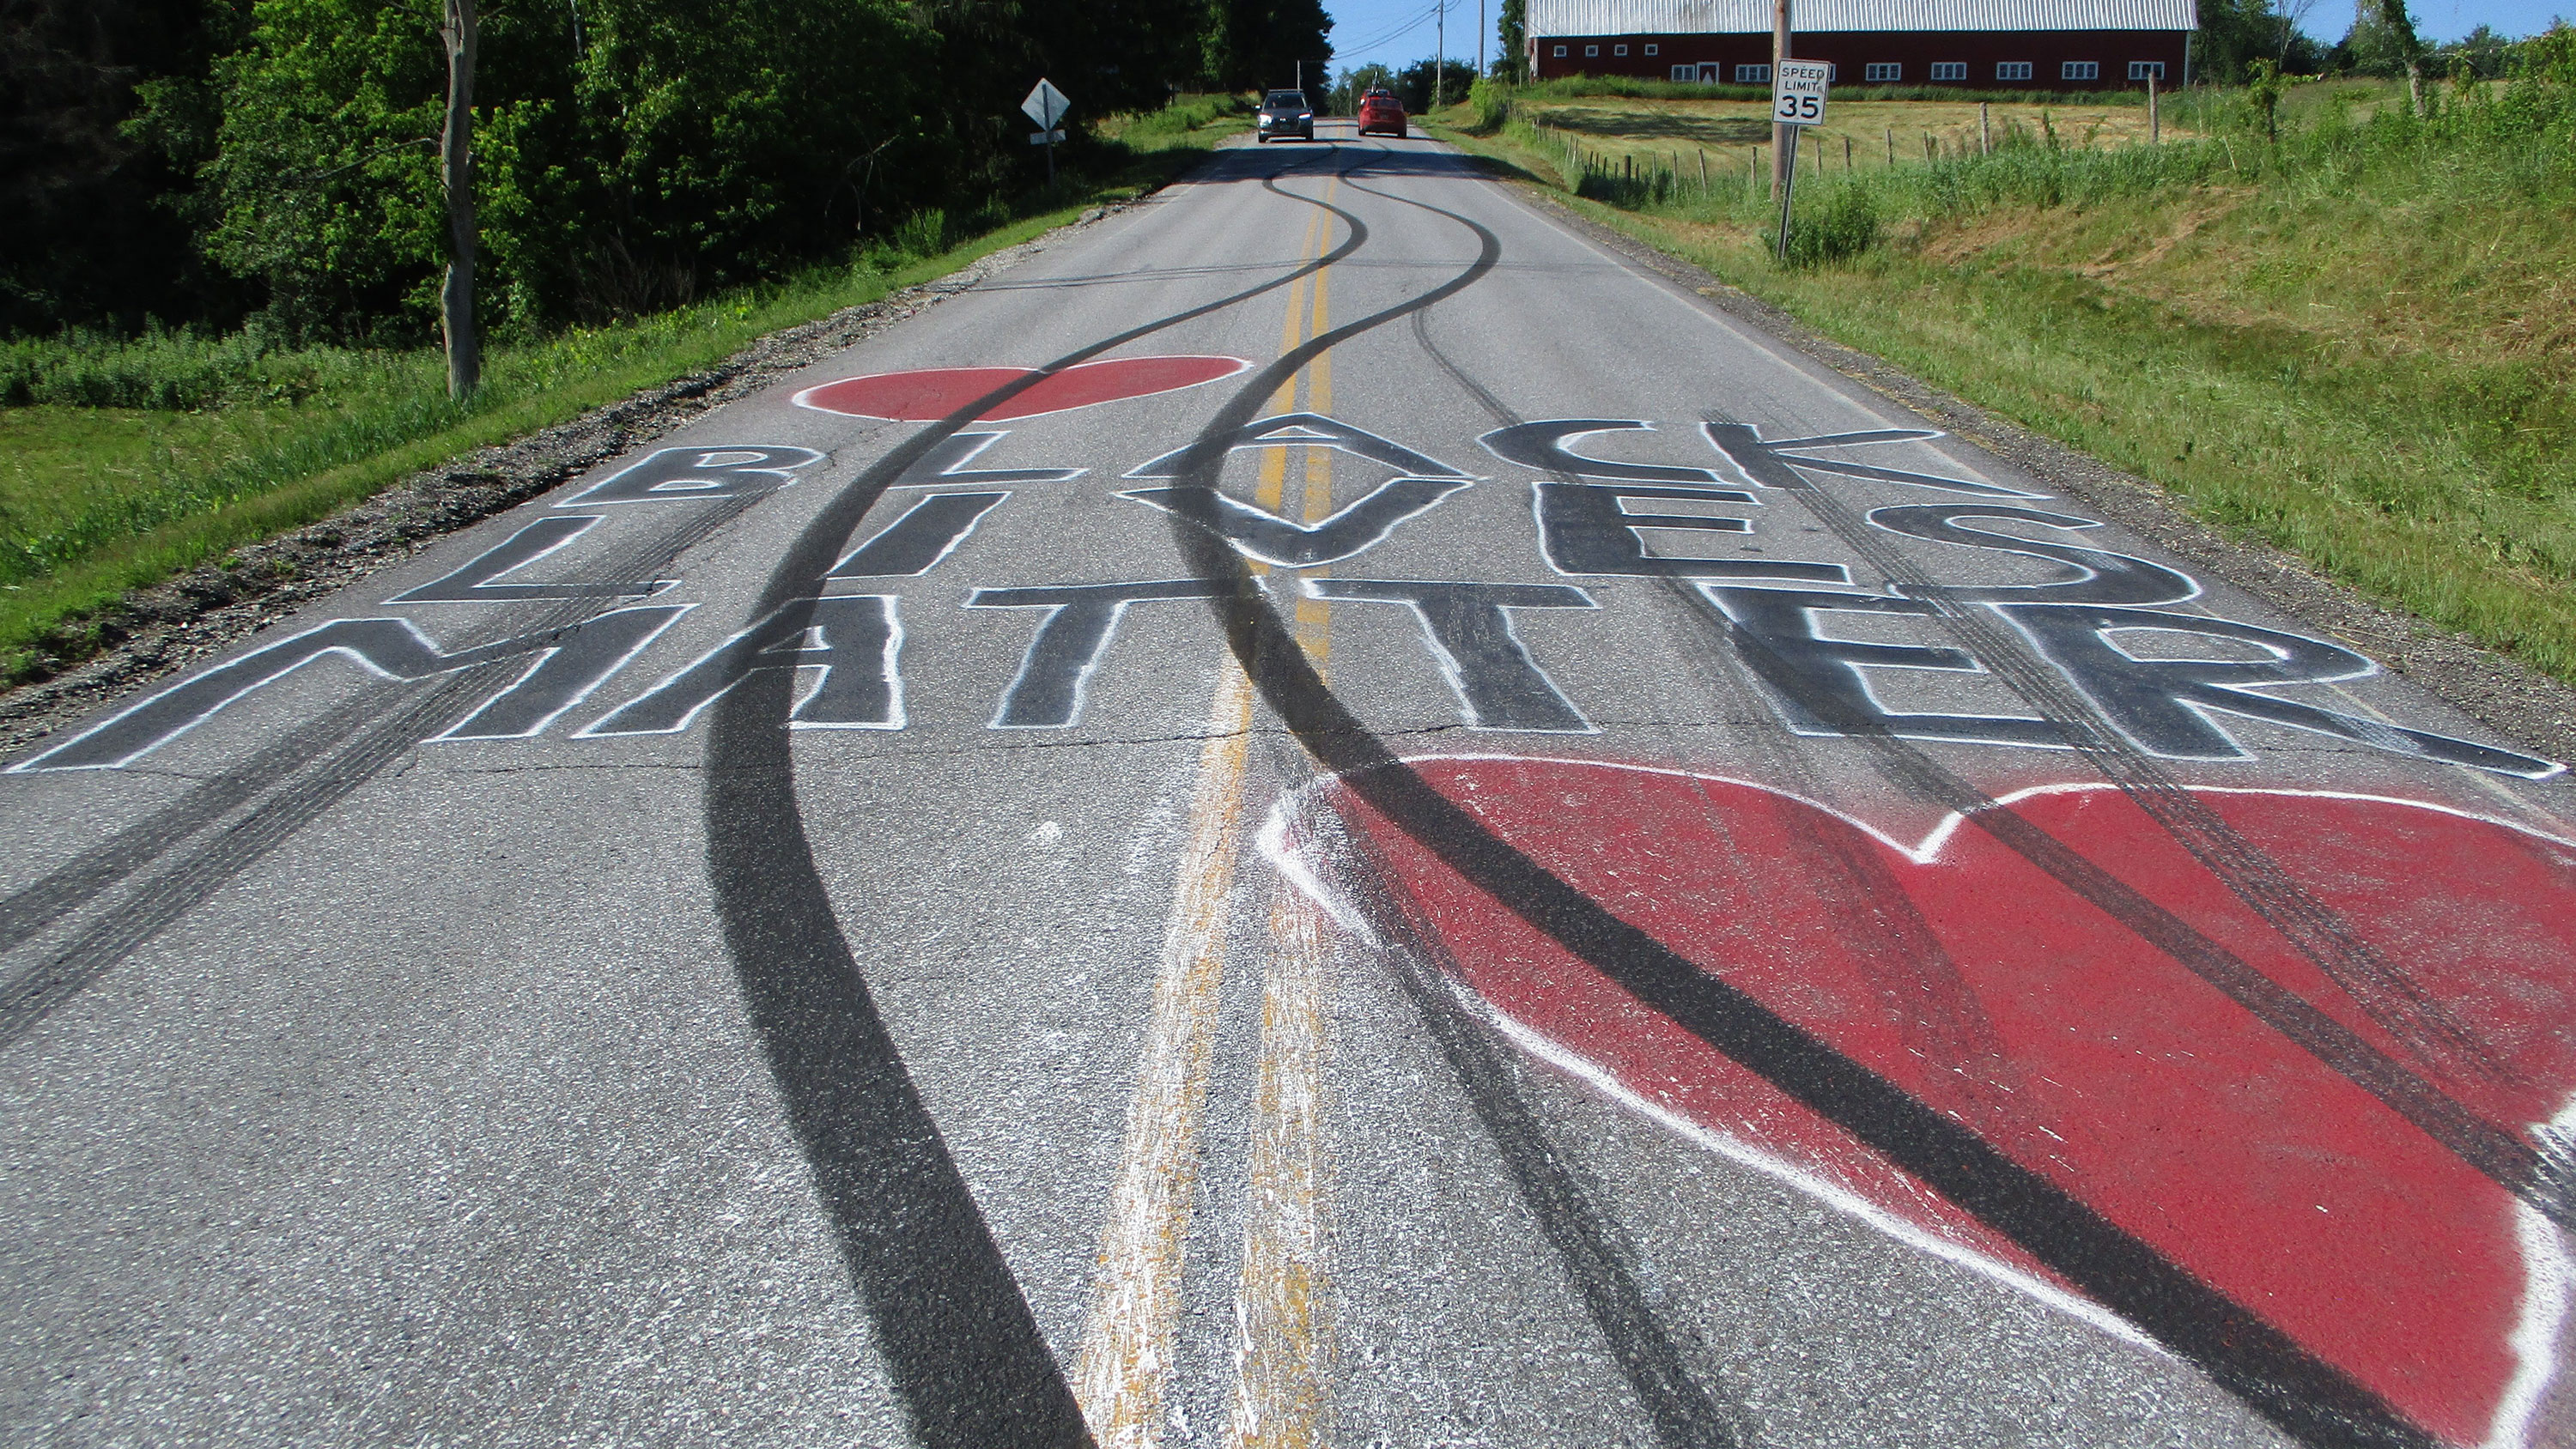 Vermont Black Lives Matter roadway murals defaced, state police say